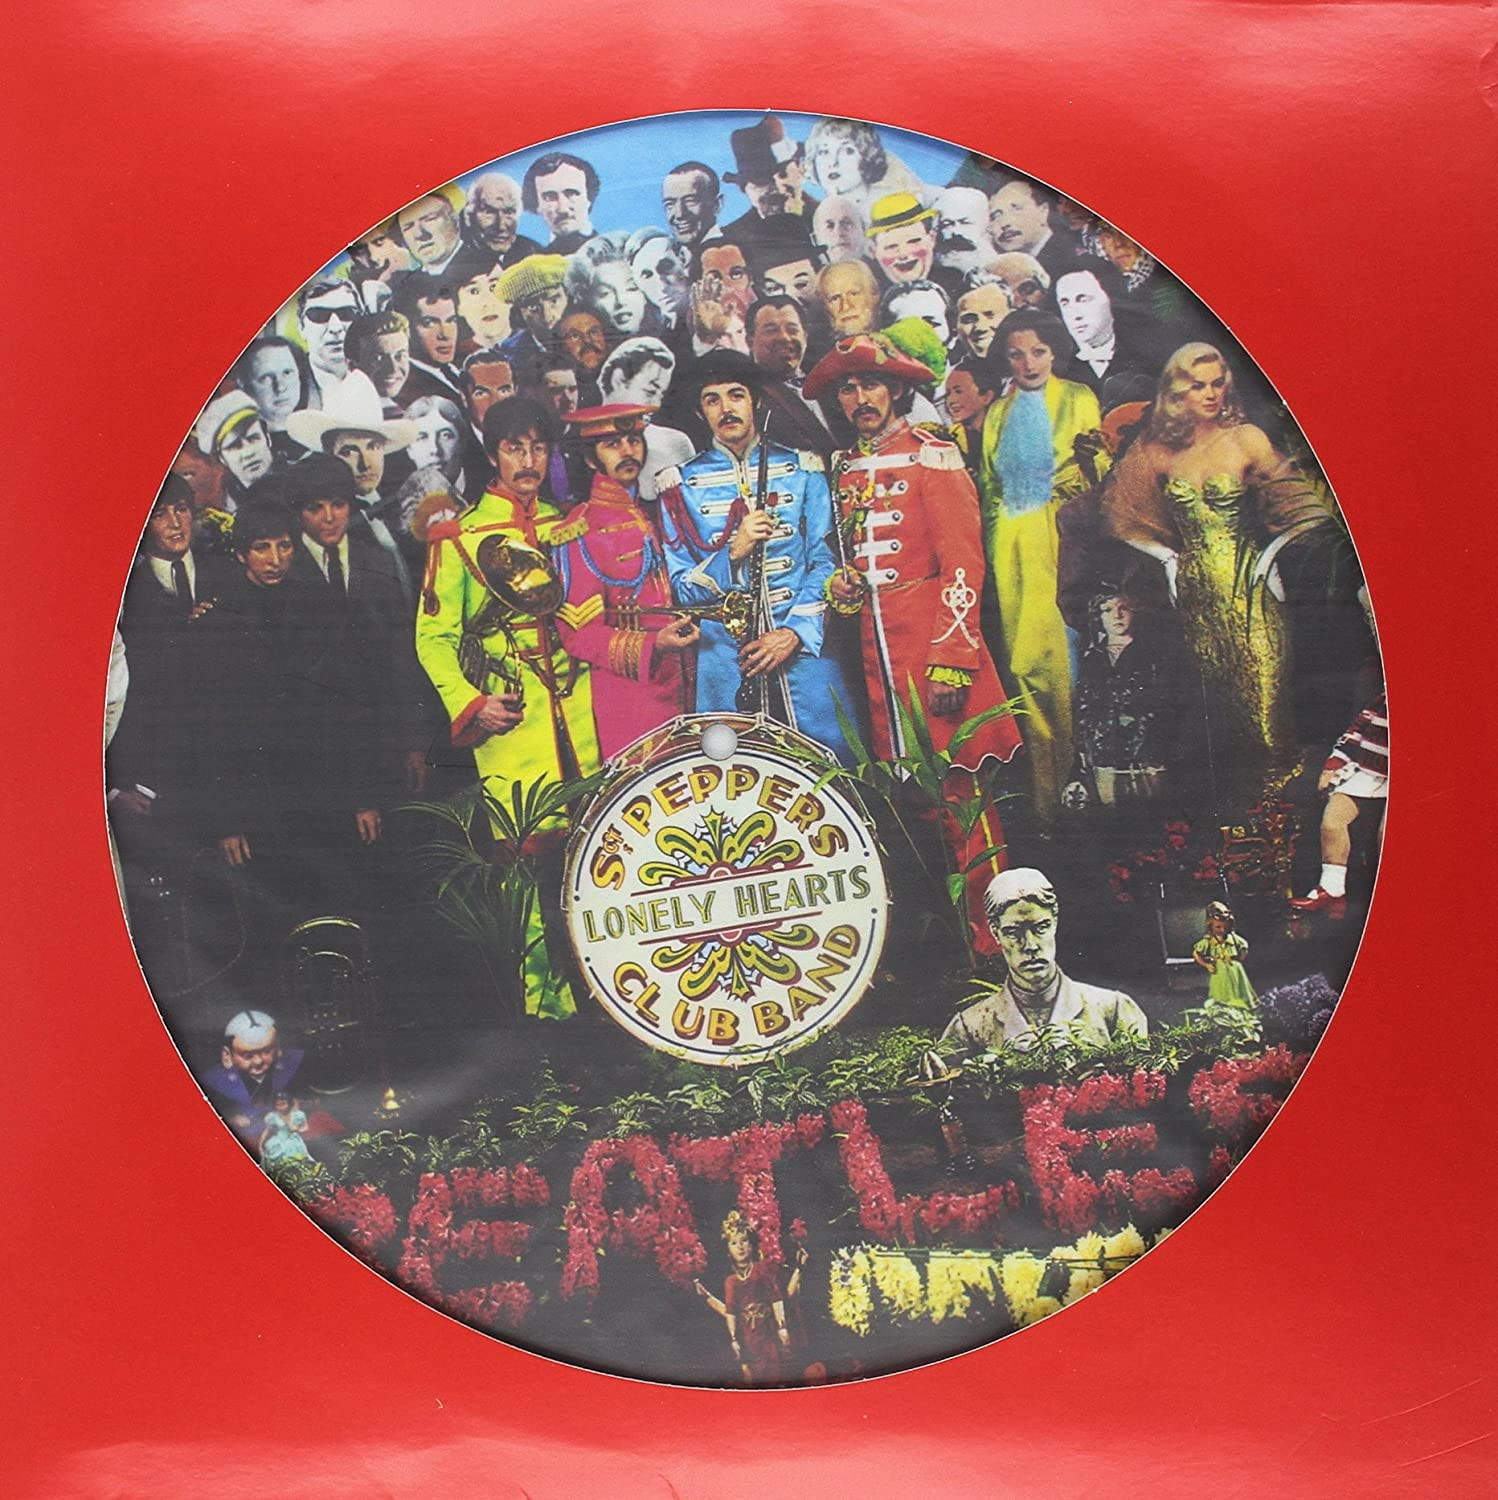 The Beatles - Sgt. Pepper's Lonely Hearts Club Band 2017 Stereo Mix Picture Disk Edition